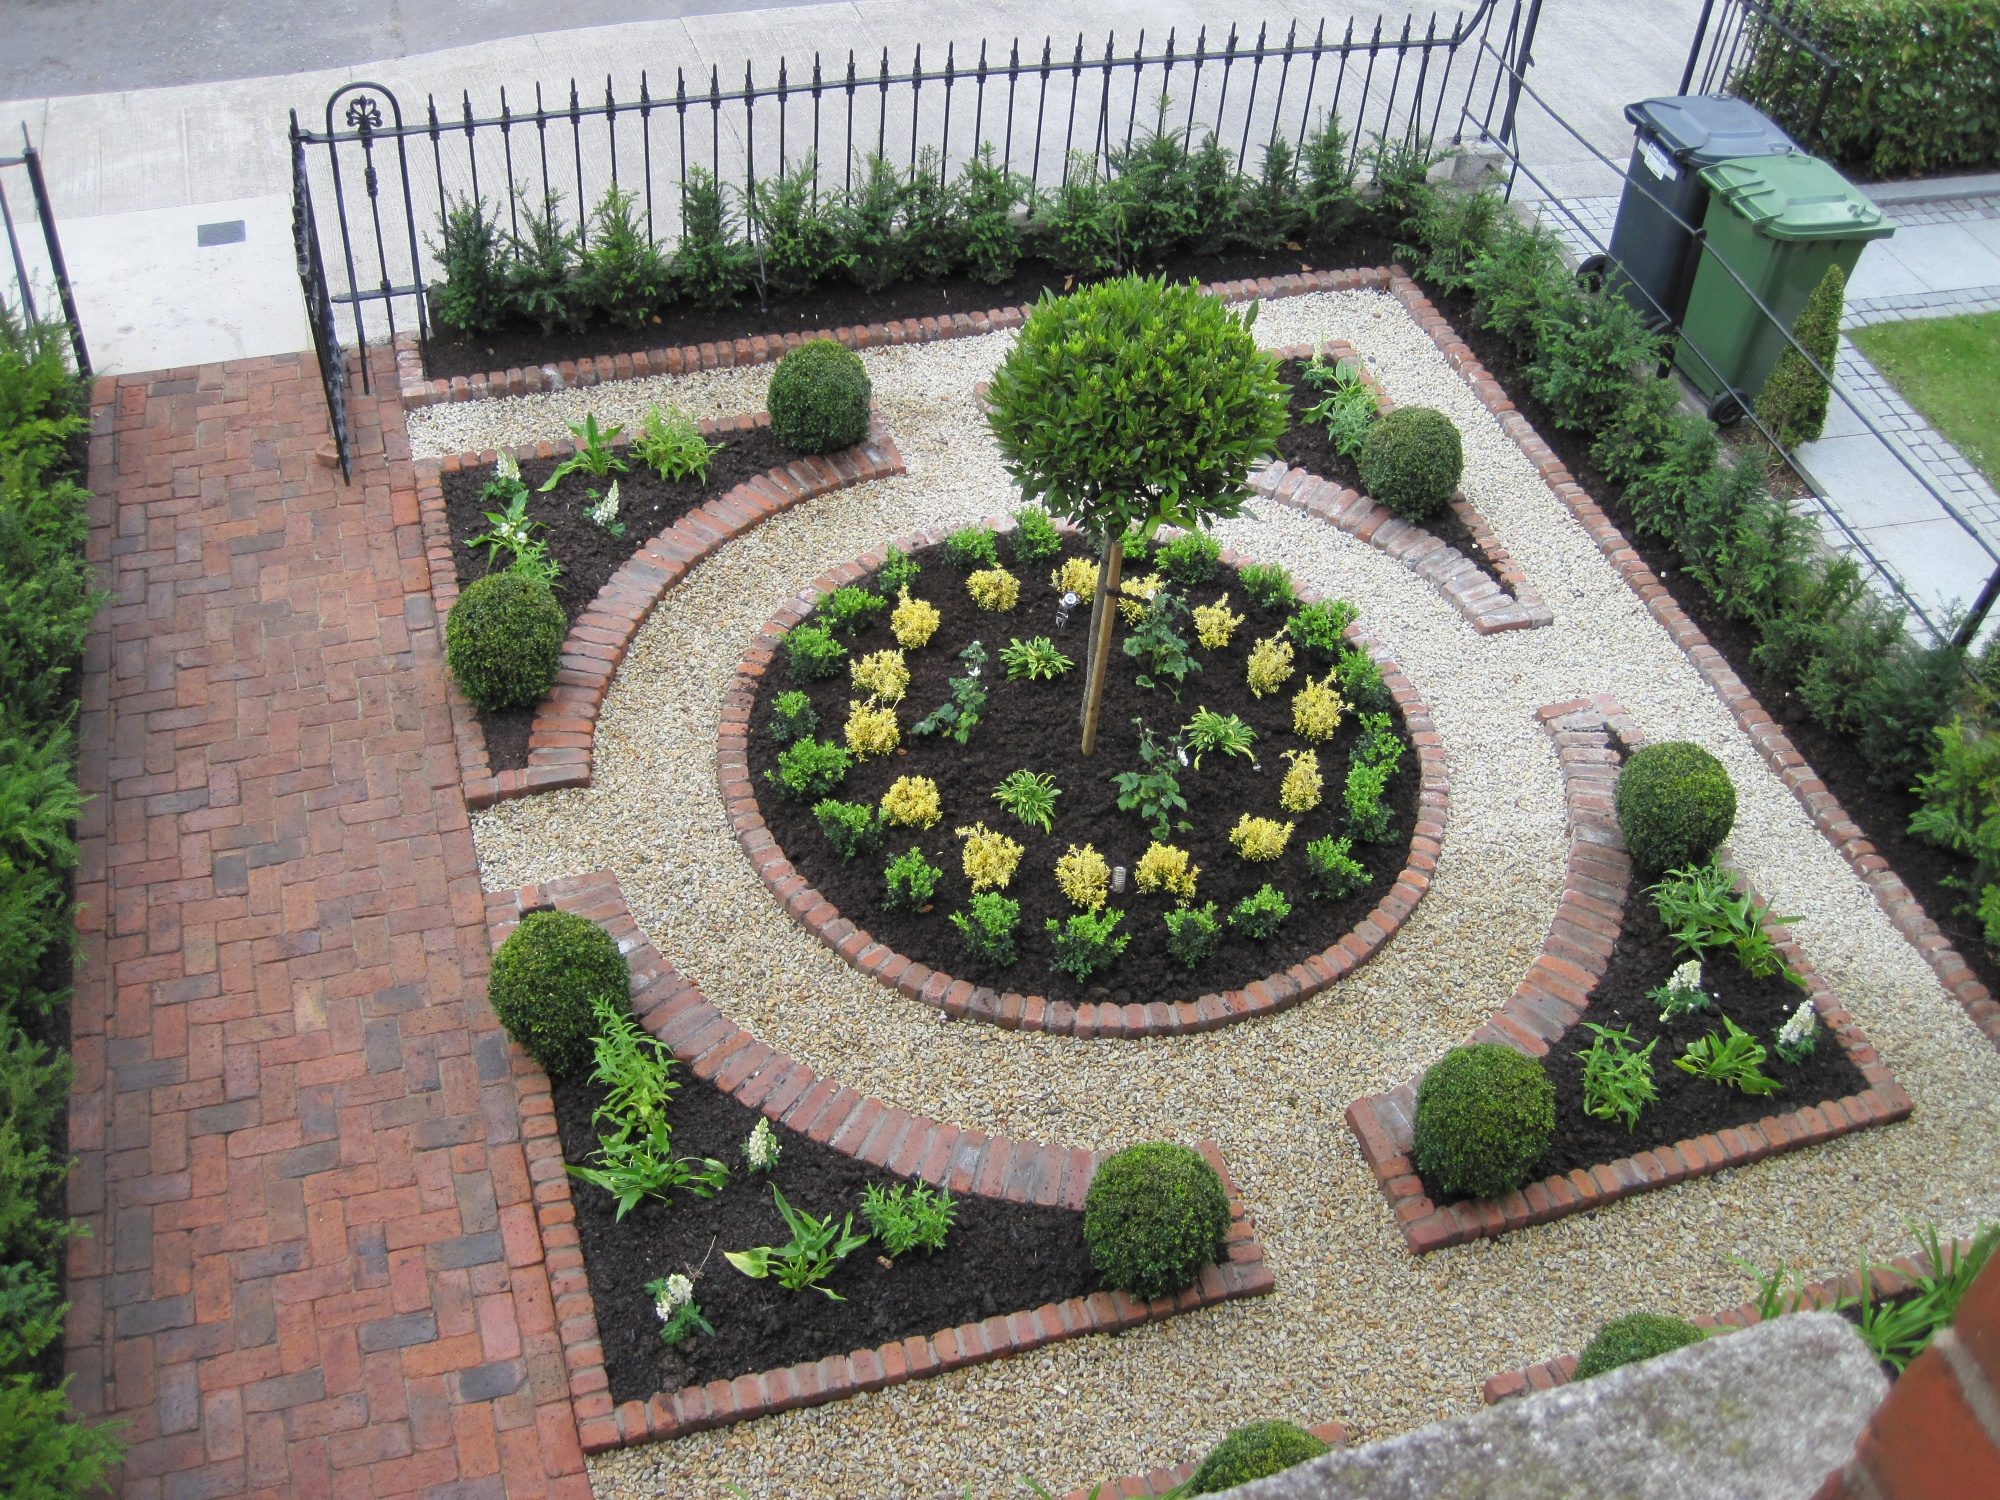 Garden design ideas inspiration advice for all styles for Front garden design